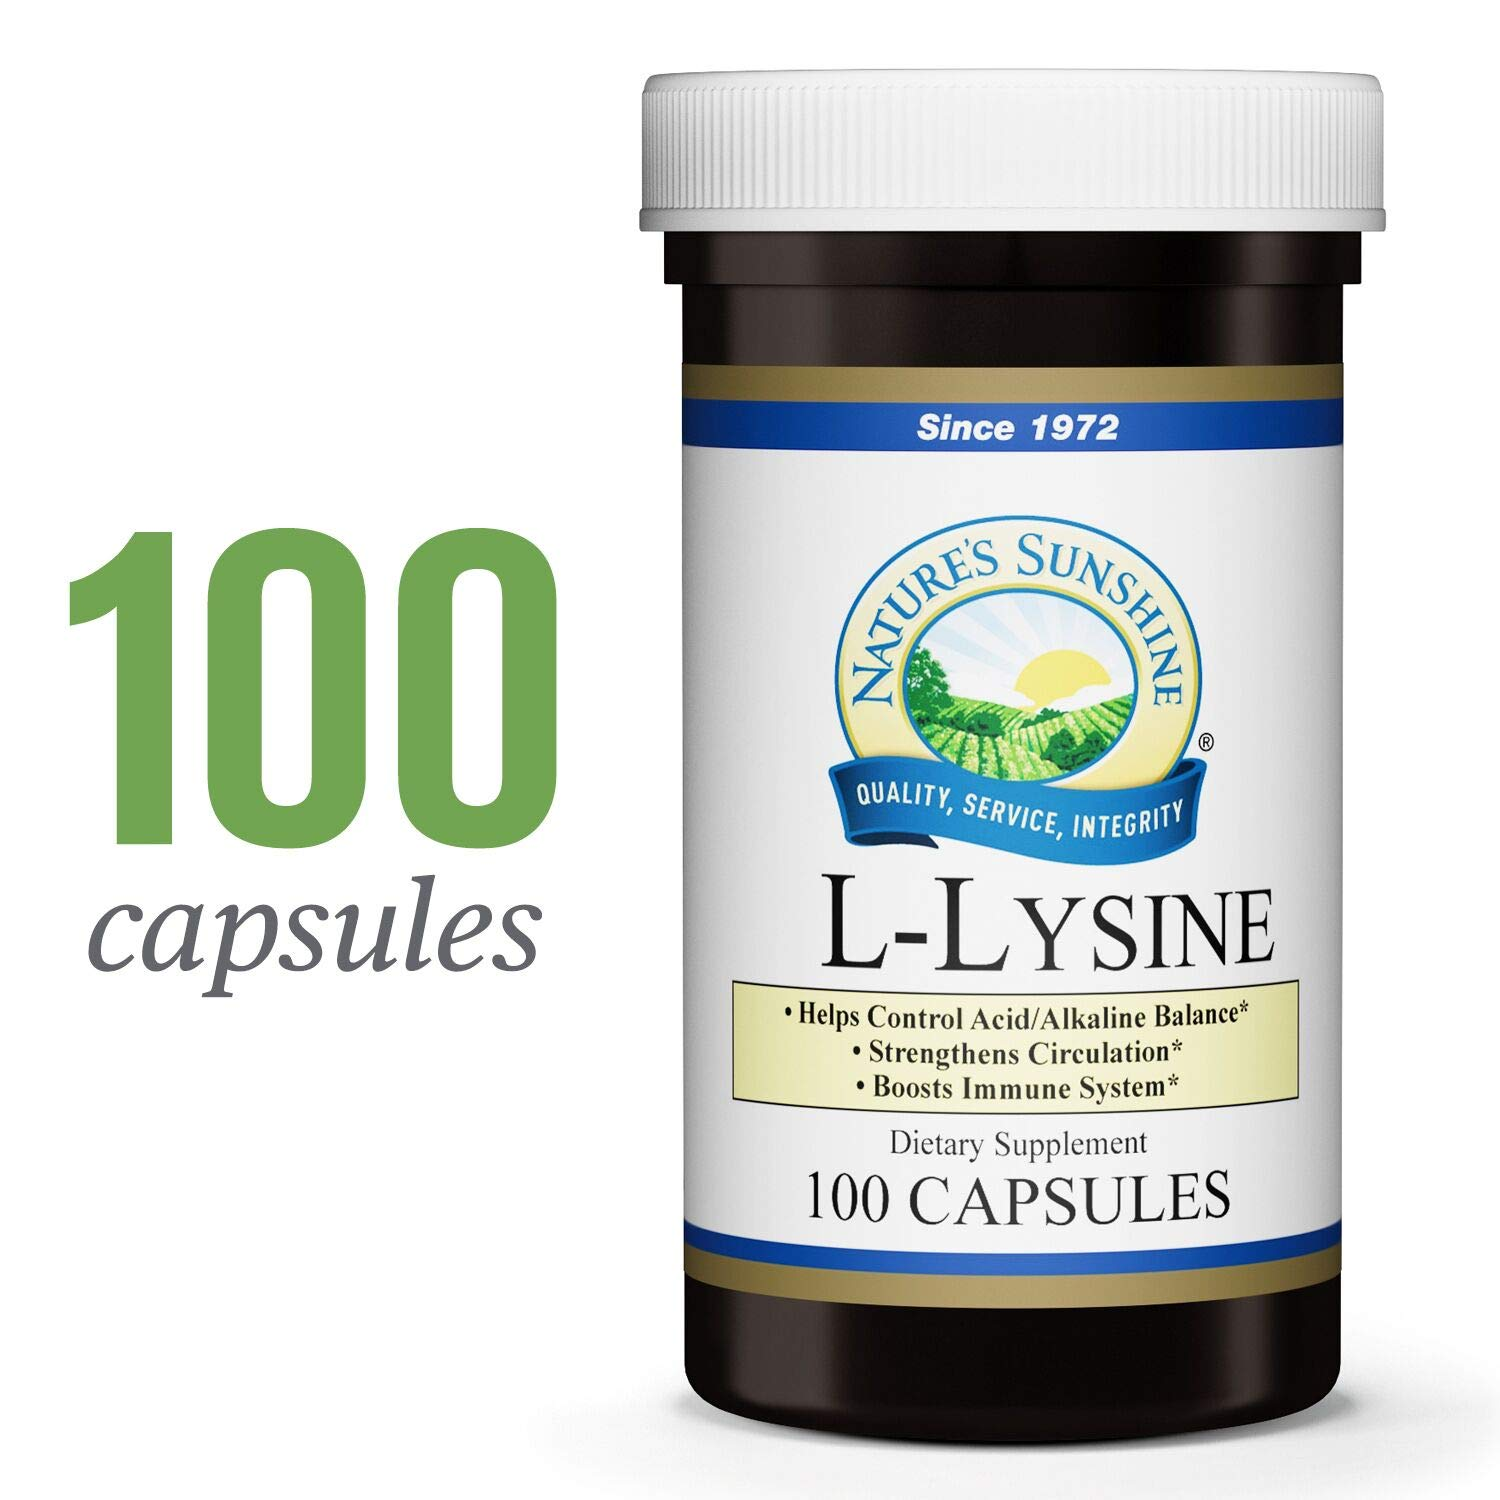 Nature's Sunshine L-Lysine, 100 Capsules | Essential Amino Acids Capsules with 474 mg of L-Lysine Hydrochloride to Help Your Body Control The Acid and Alkaline Balance by Nature's Sunshine